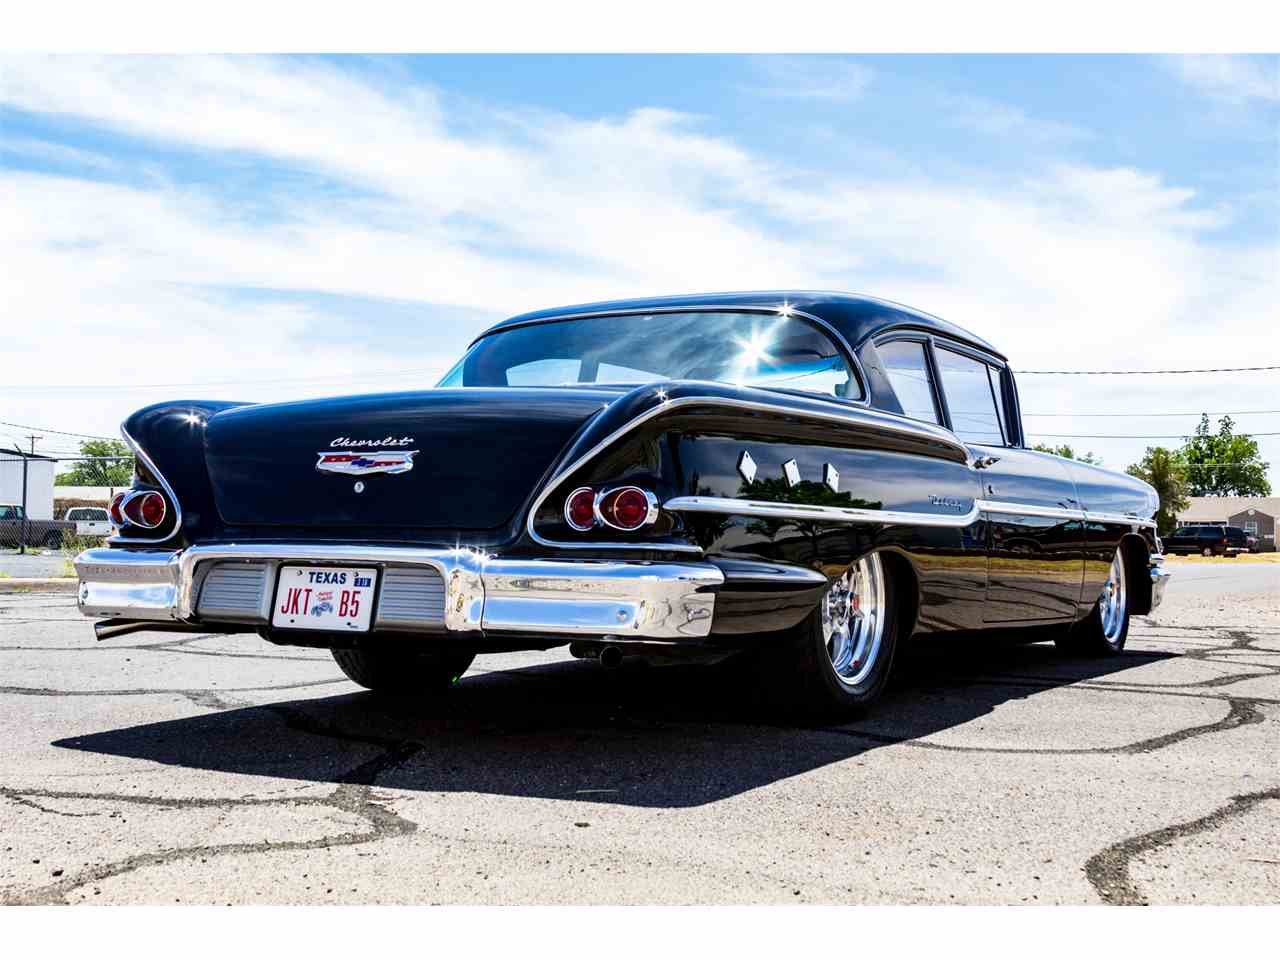 Large Picture of '58 Chevrolet Del Ray - $41,500.00 Offered by a Private Seller - LVAQ